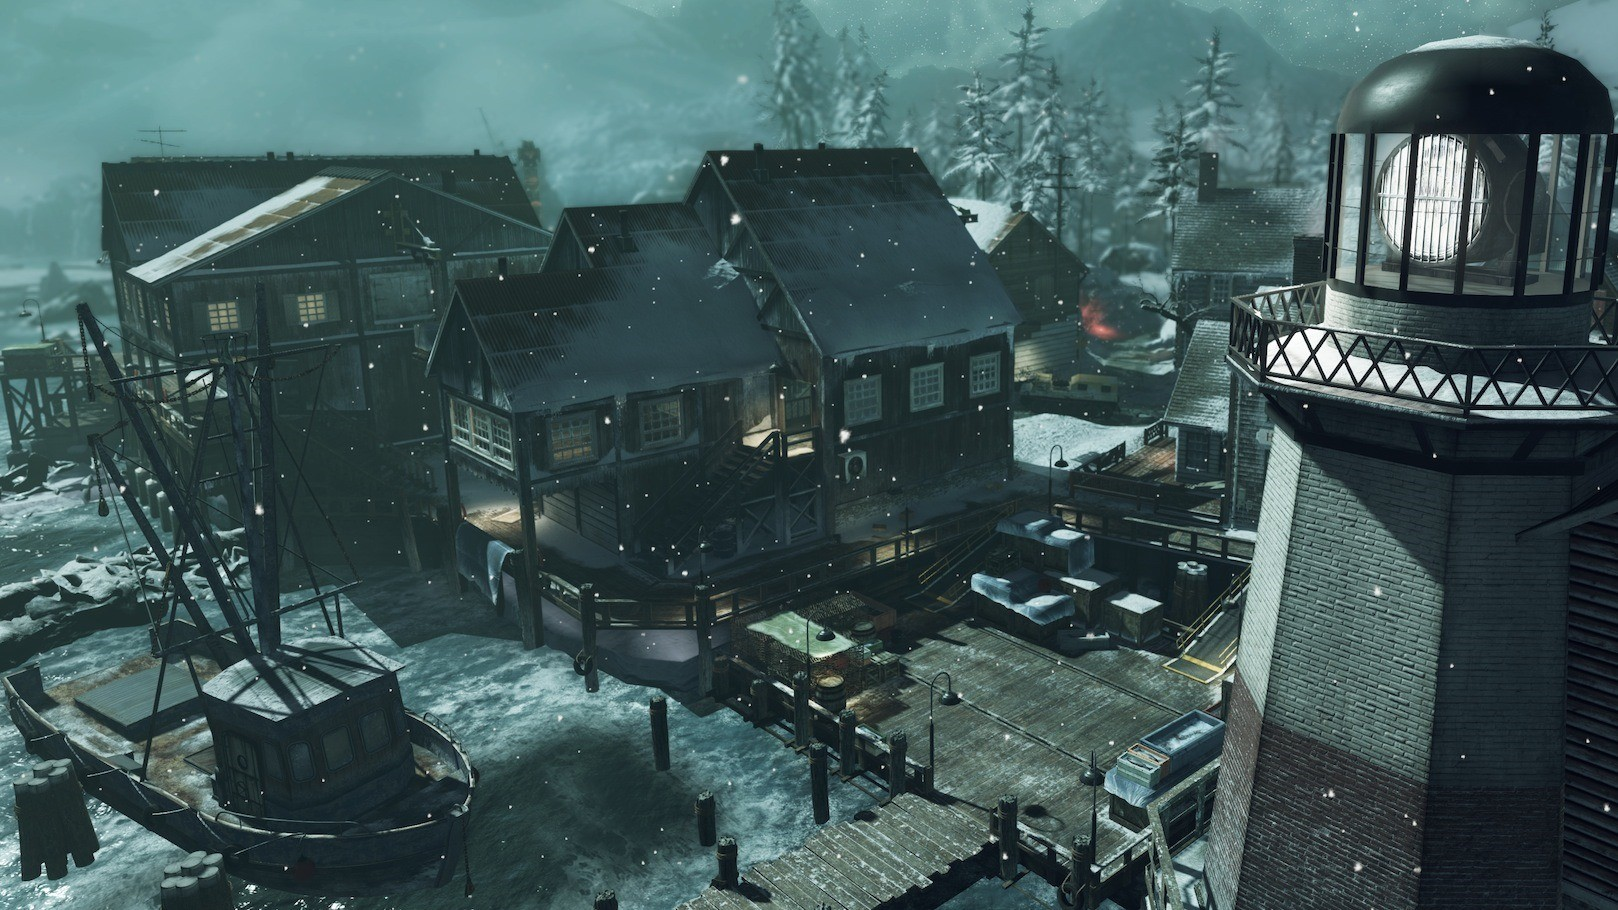 COD_Ghosts_Whiteout_Environment.jpg